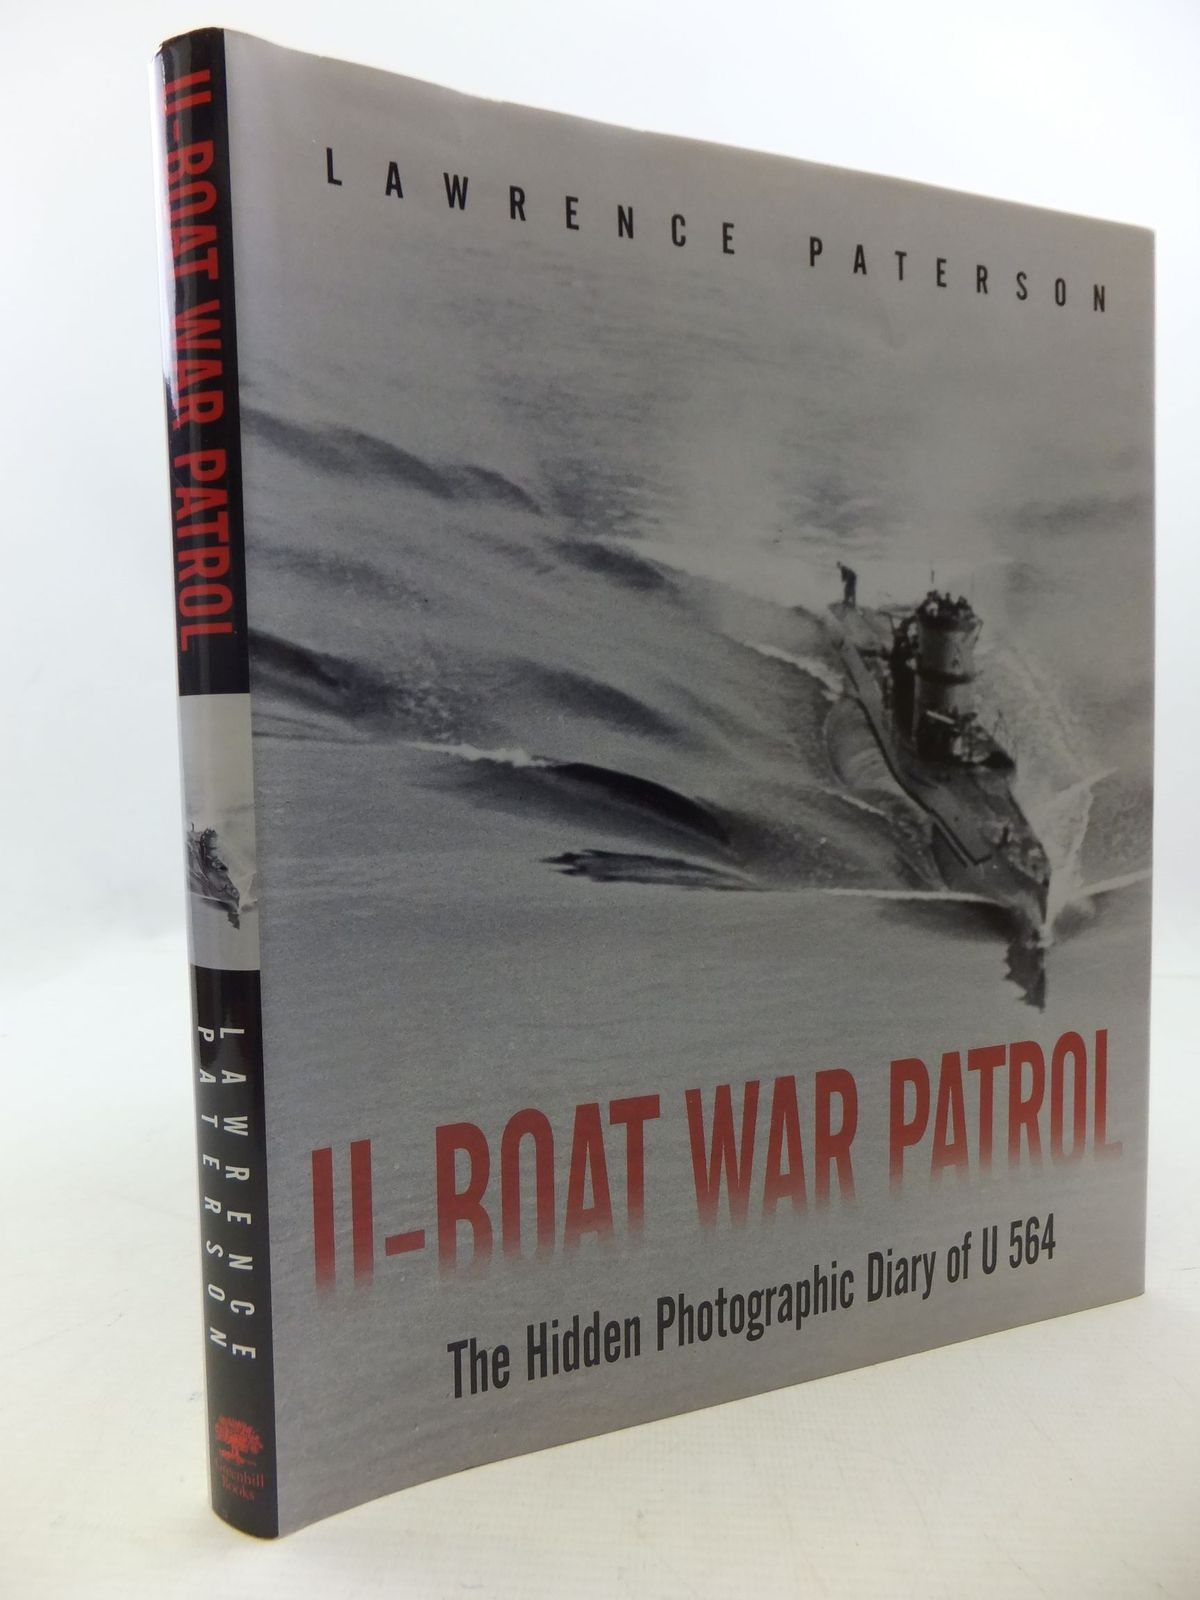 Photo of U-BOAT WAR PATROL THE HIDDEN PHOTOGRAPHIC DIARY OF U 564 written by Paterson, Lawrence published by Greenhill Books, Stackpole Books (STOCK CODE: 1709857)  for sale by Stella & Rose's Books